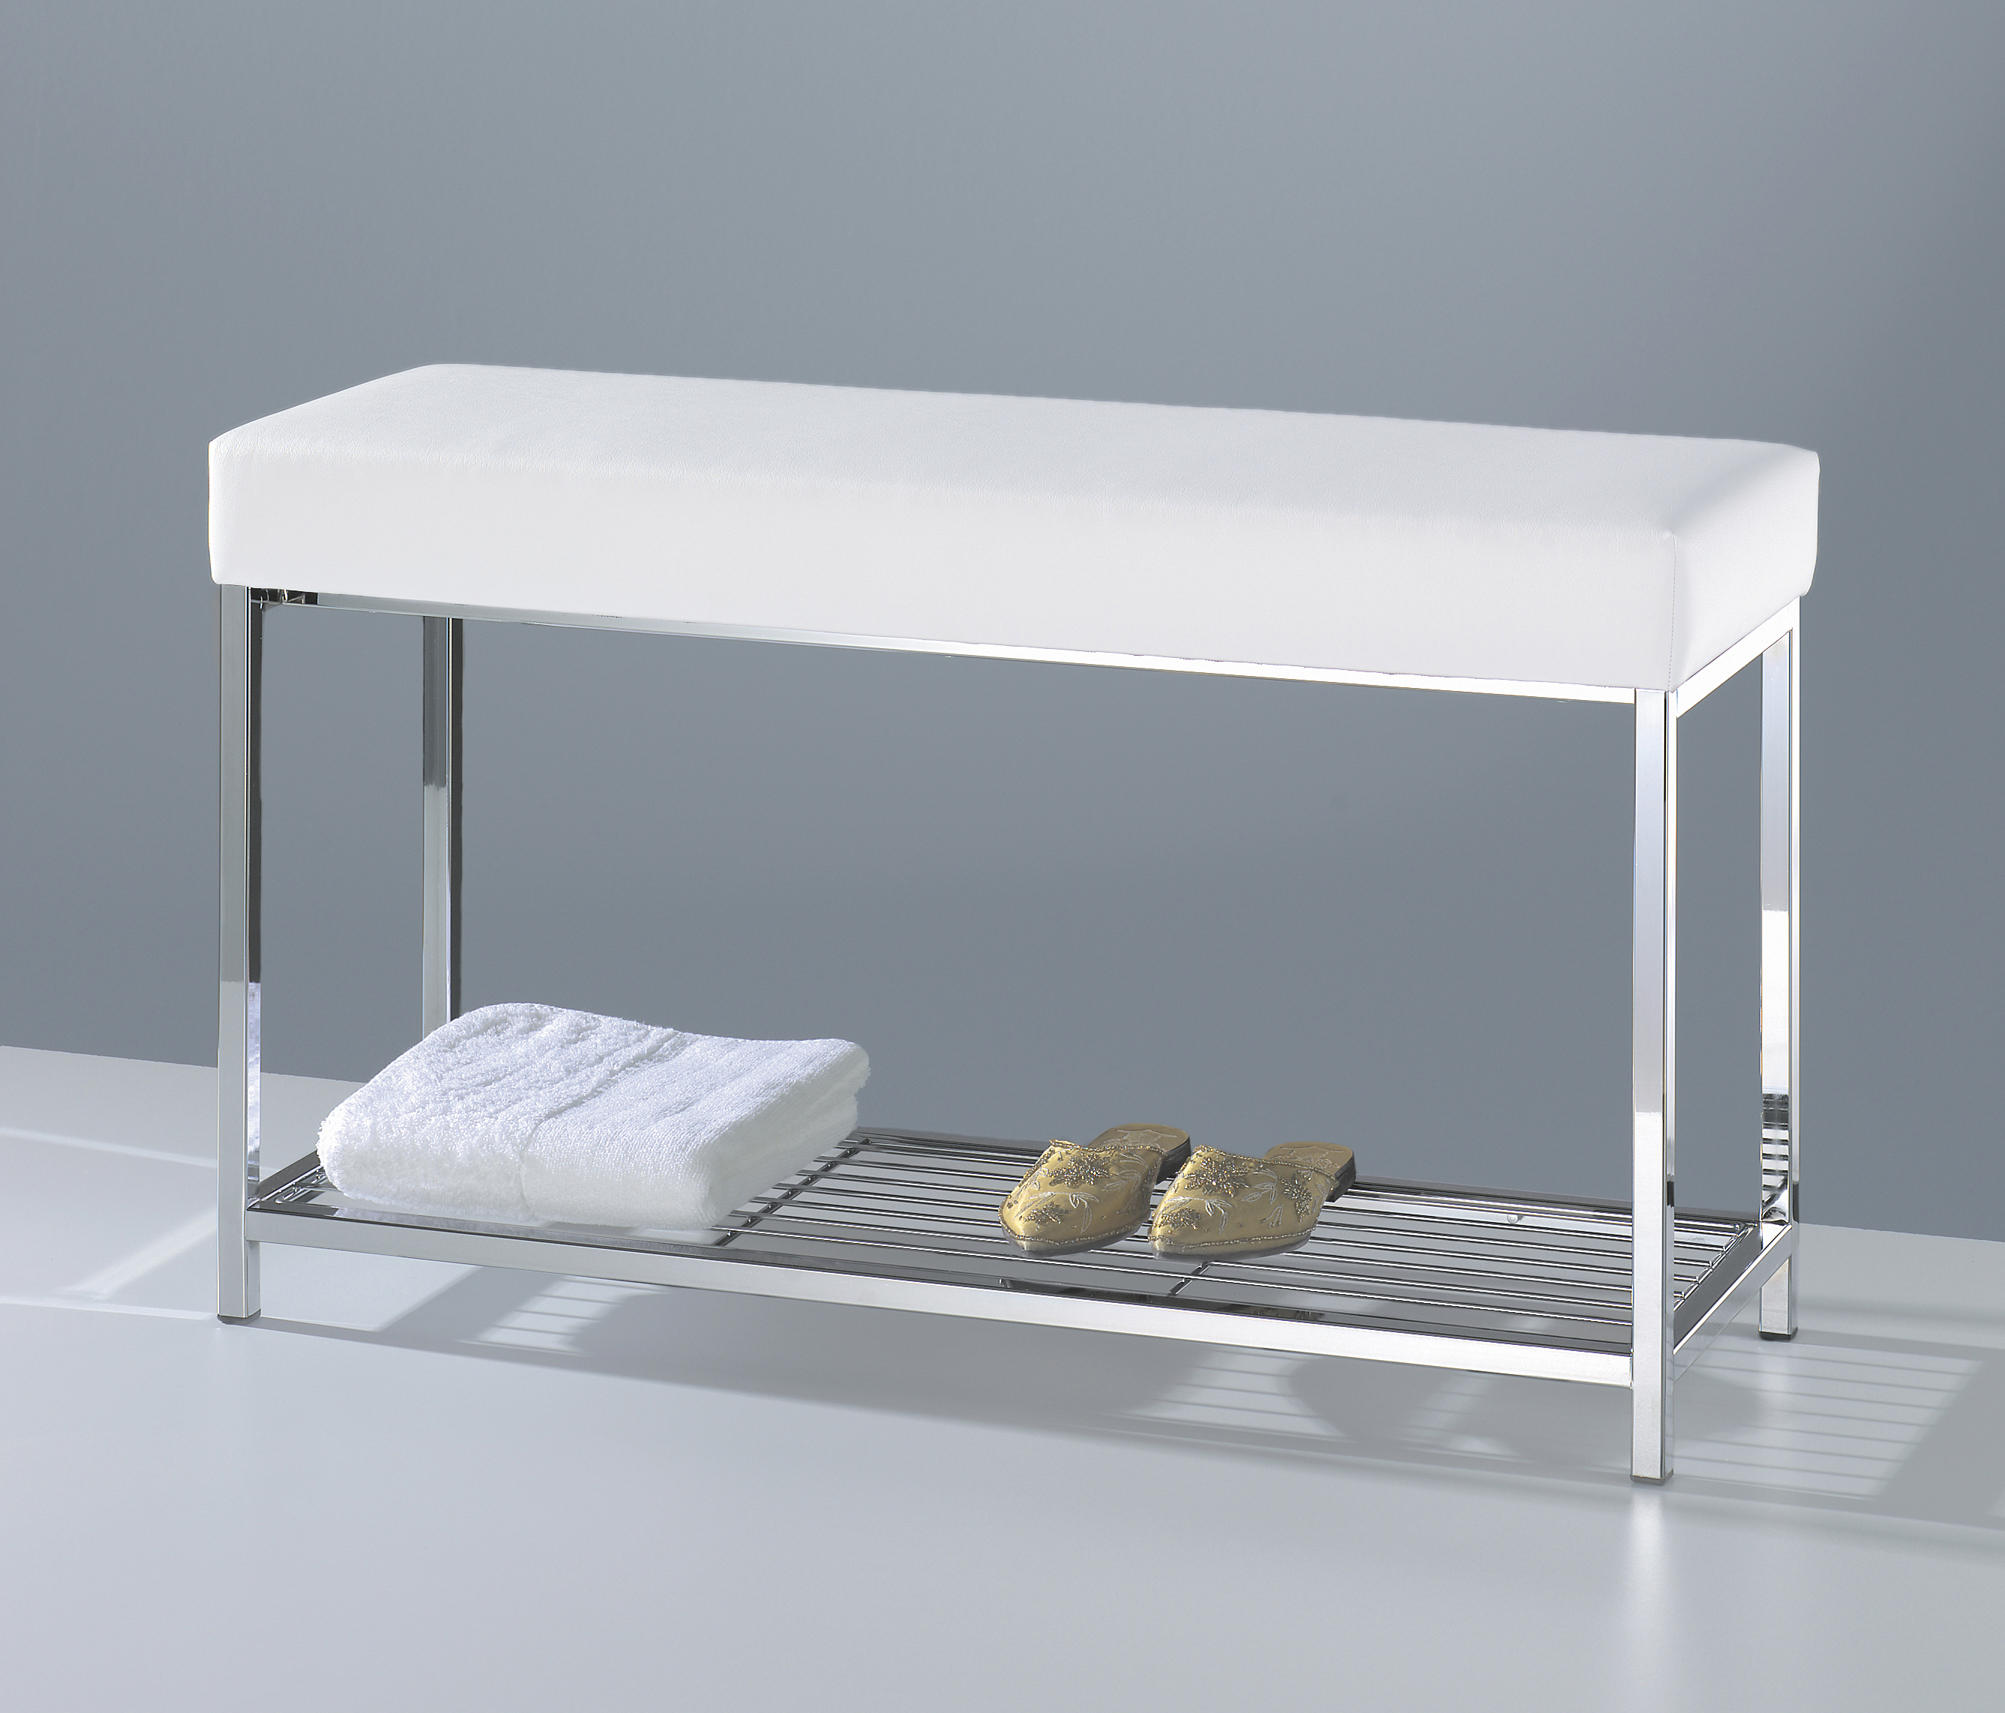 Dw 67 stools benches from decor walther architonic for Decor walther salle de bain